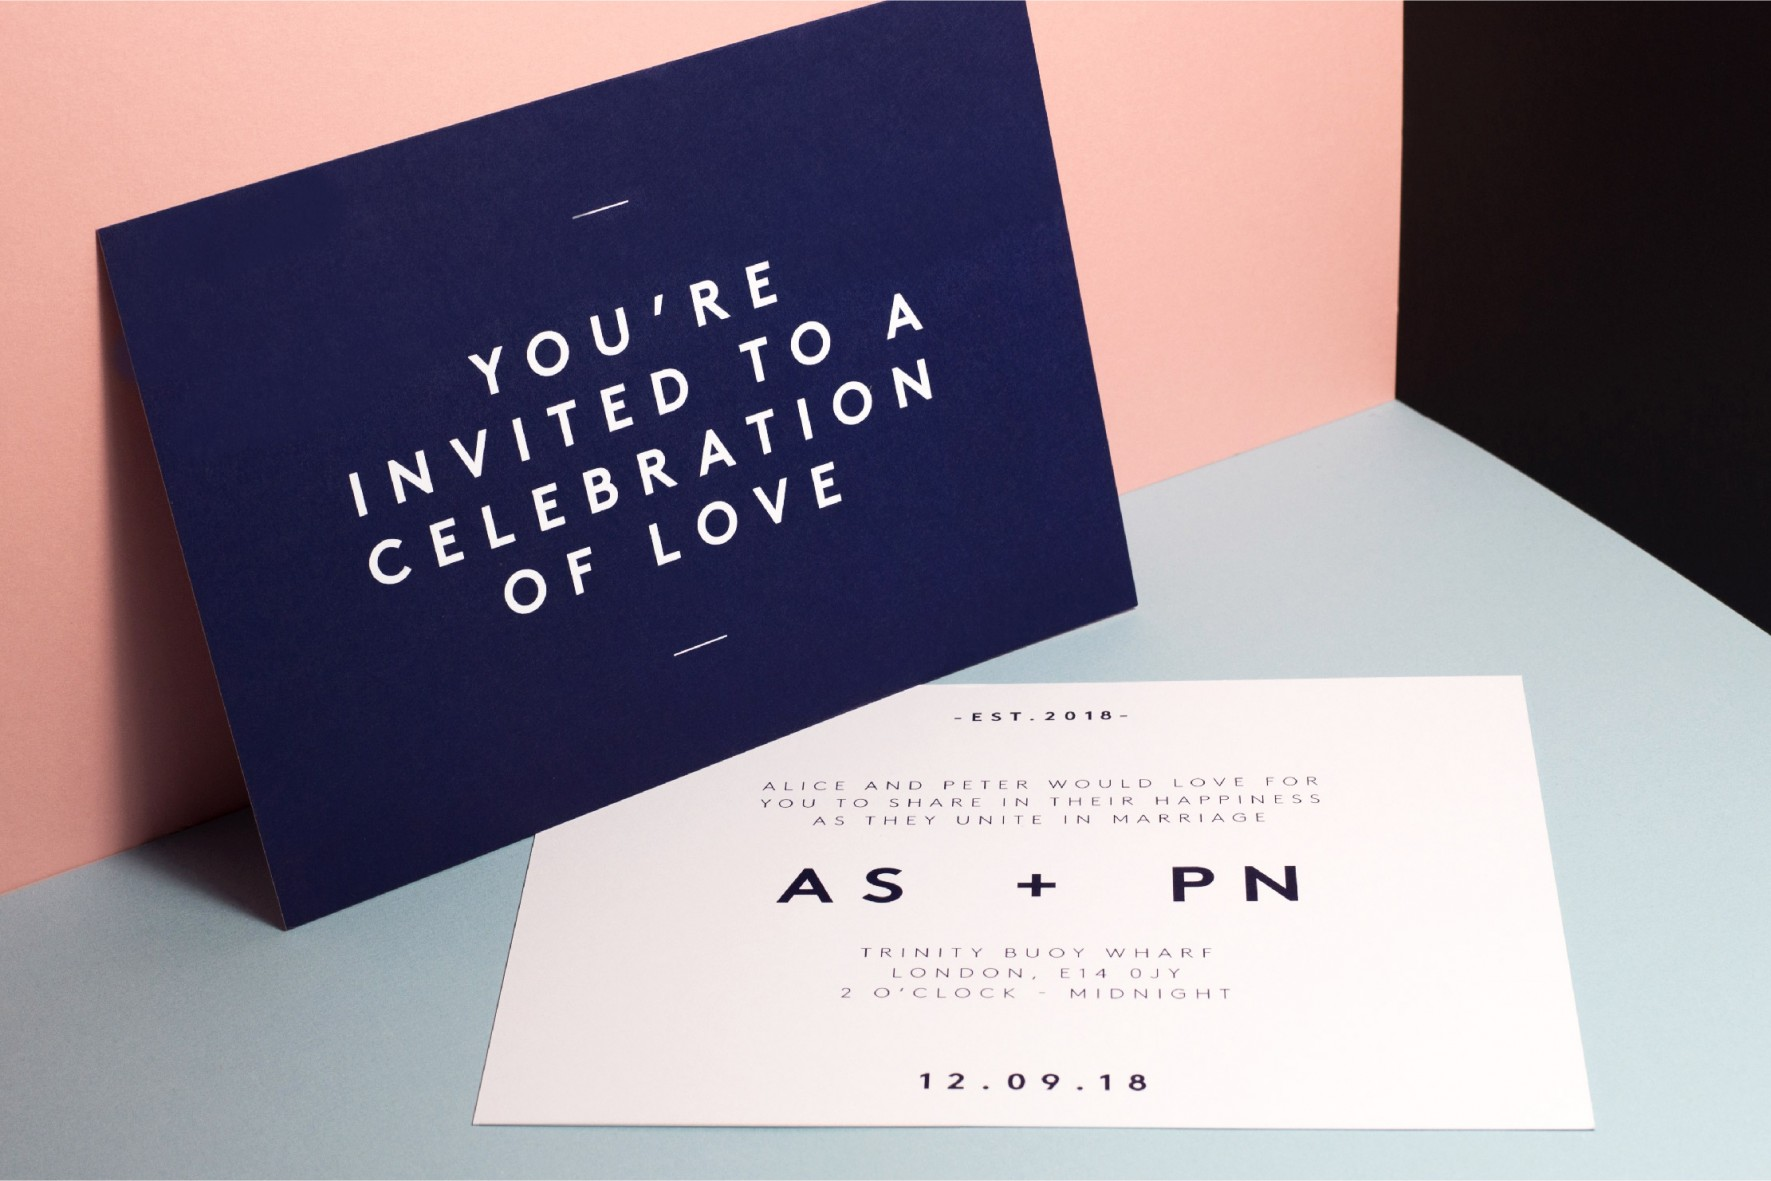 Modern simple wedding invitation scandi style - navy and white - wedding stationery by www.rosepaperscissors.com